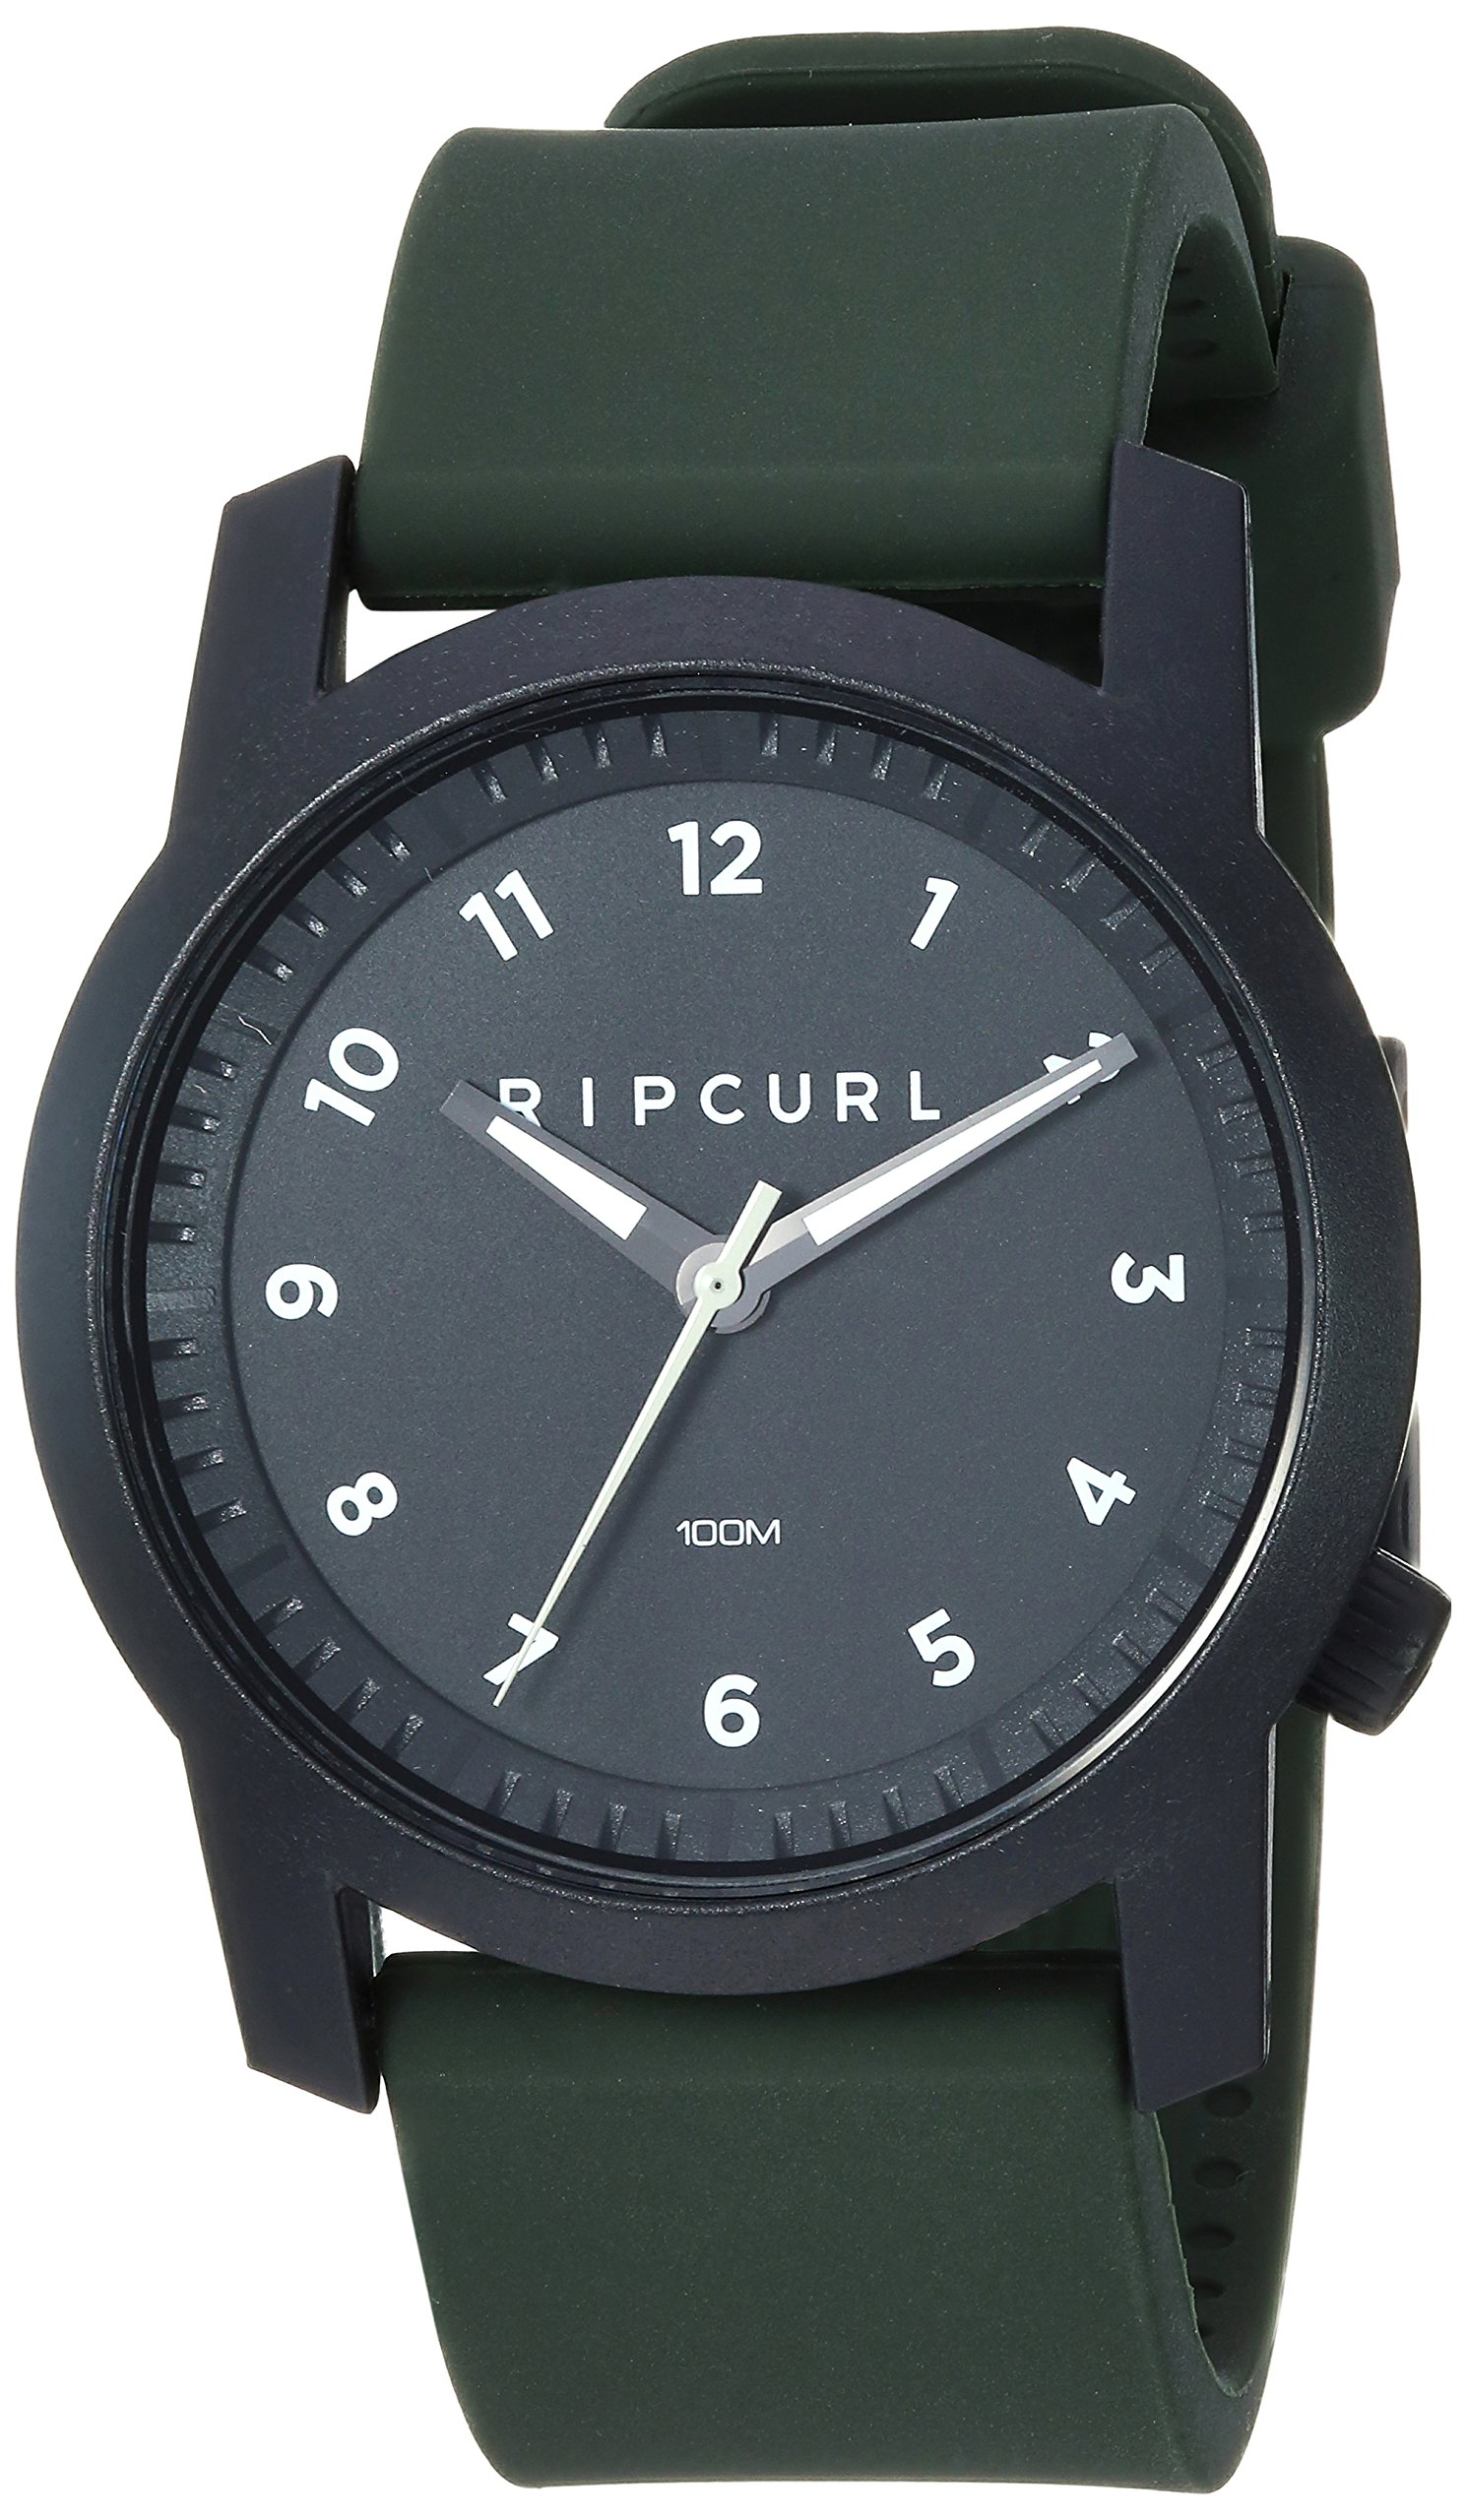 Rip Curl Men's Cambridge Quartz Sport Watch with Silicone Strap, Green, 22 (Model: A3088-MIL) by Rip Curl